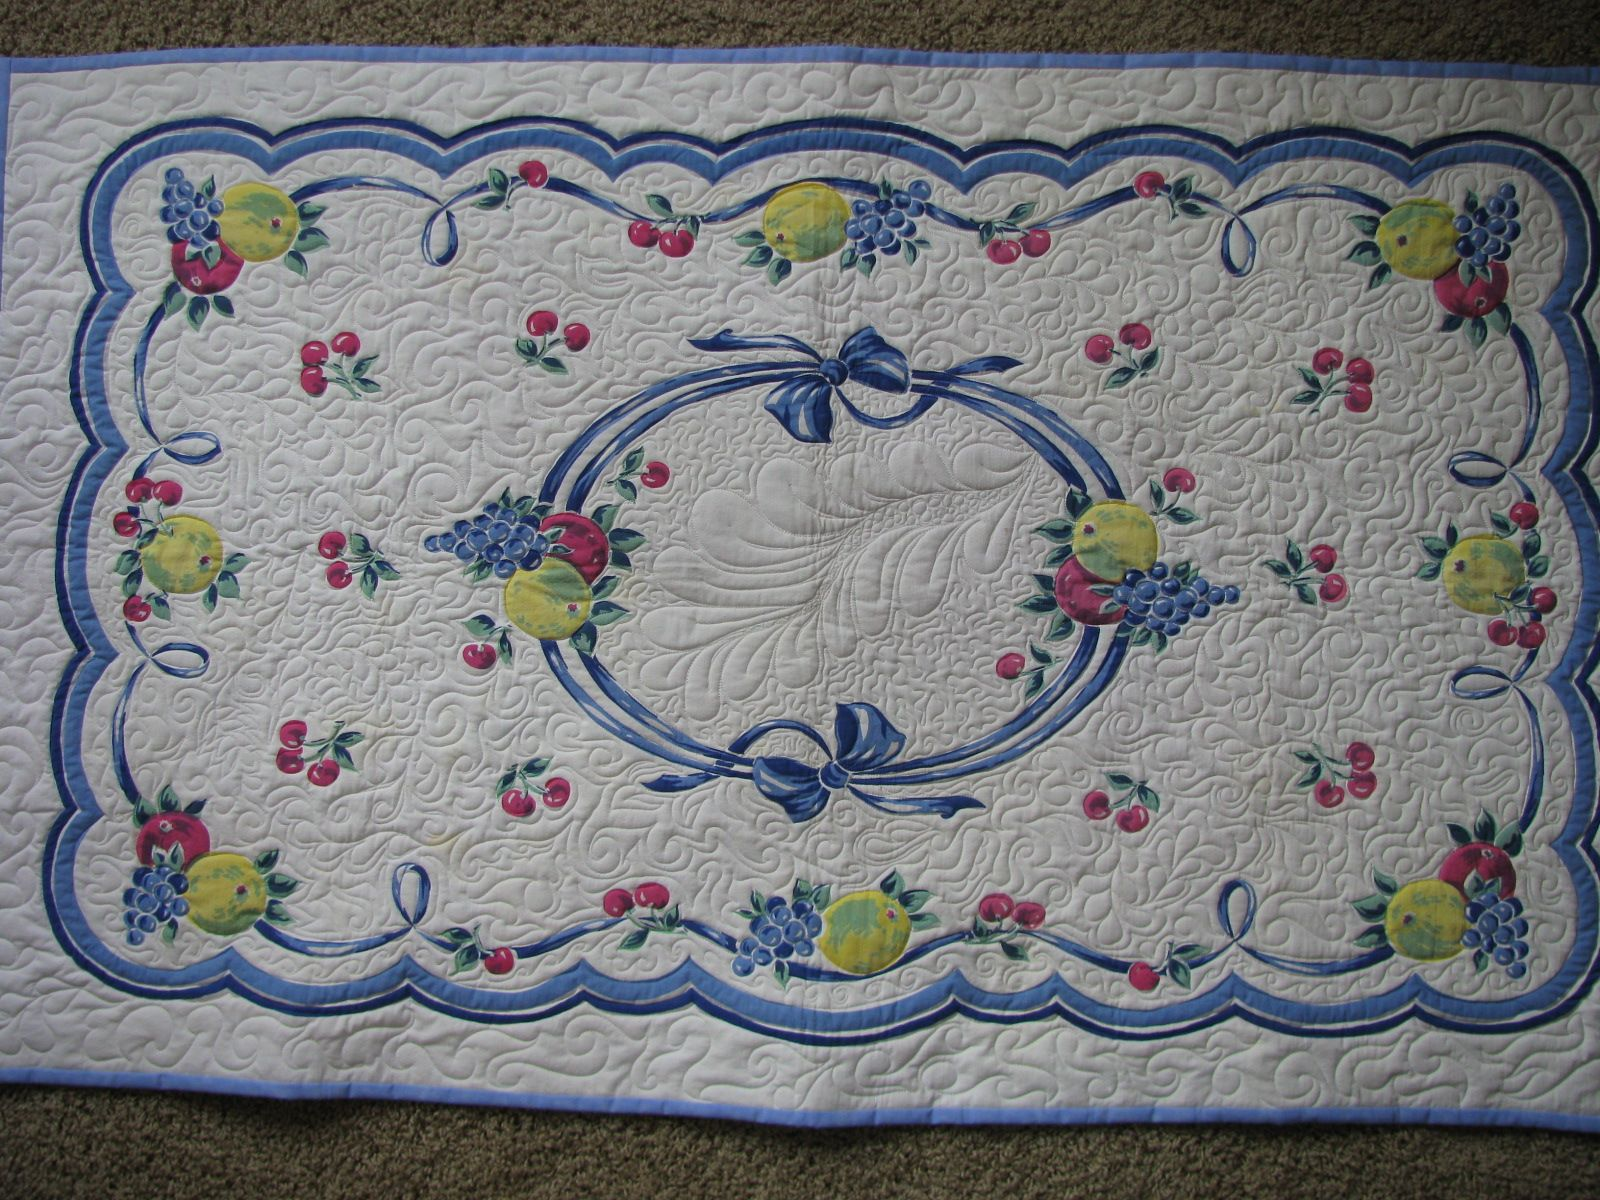 Quilting On A Vintage Tablecloth